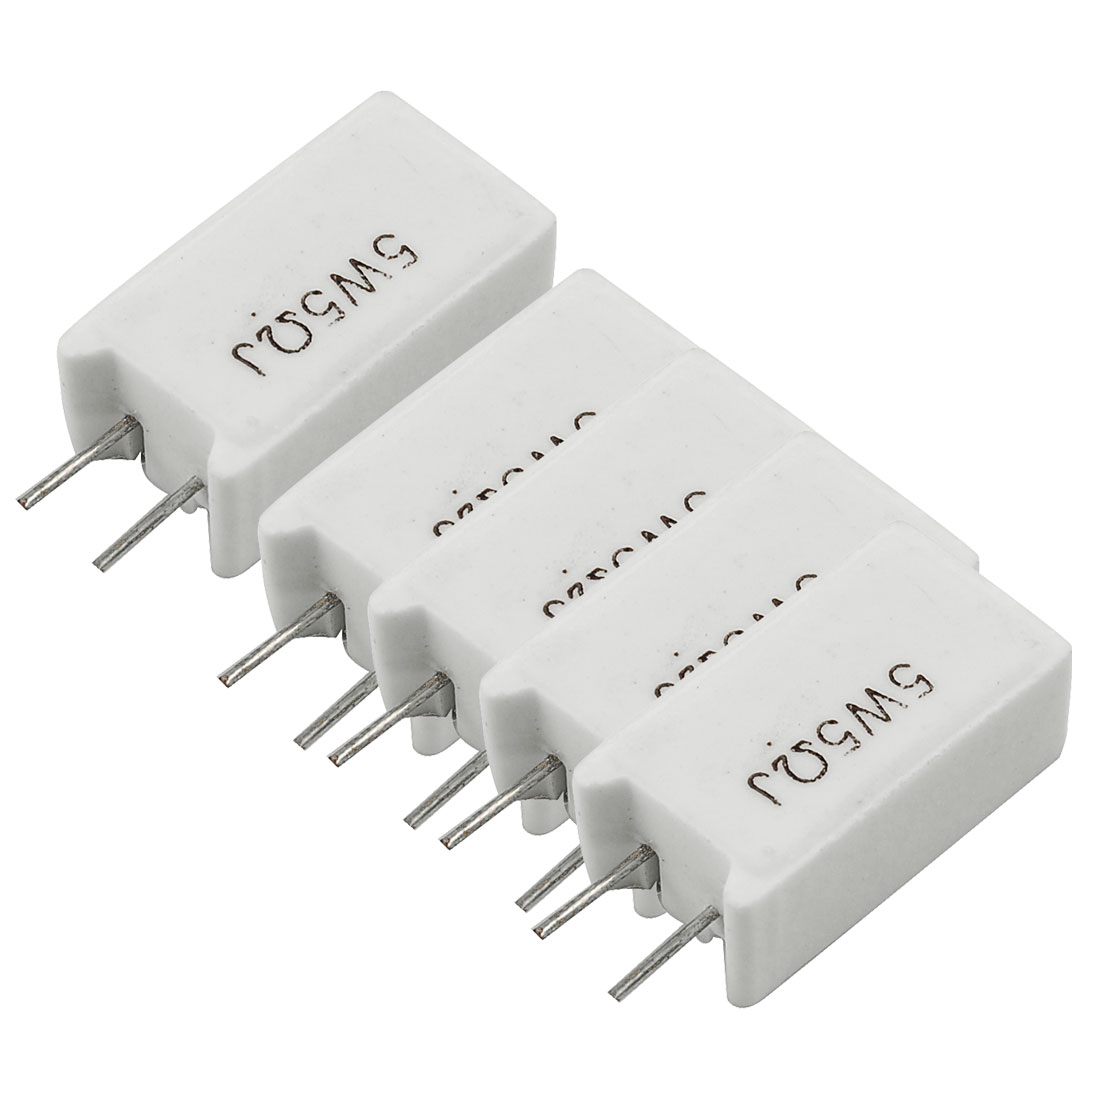 5 x 5W 5 Ohm 5R 5% Radial Lead Wirewound Cement Power Resistors